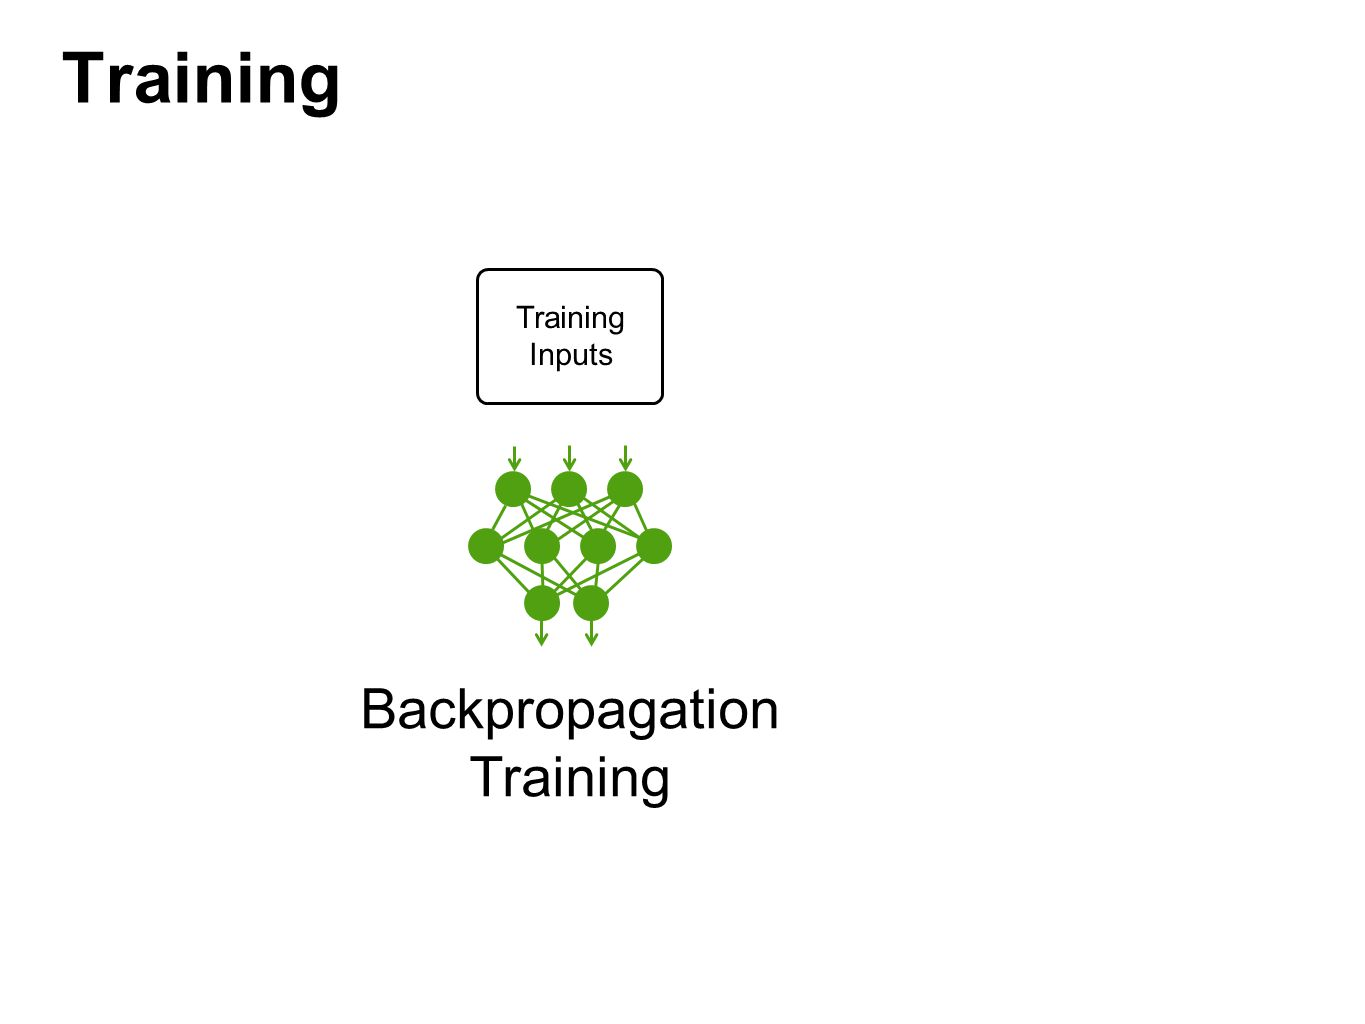 Training Backpropagation Training Training Inputs